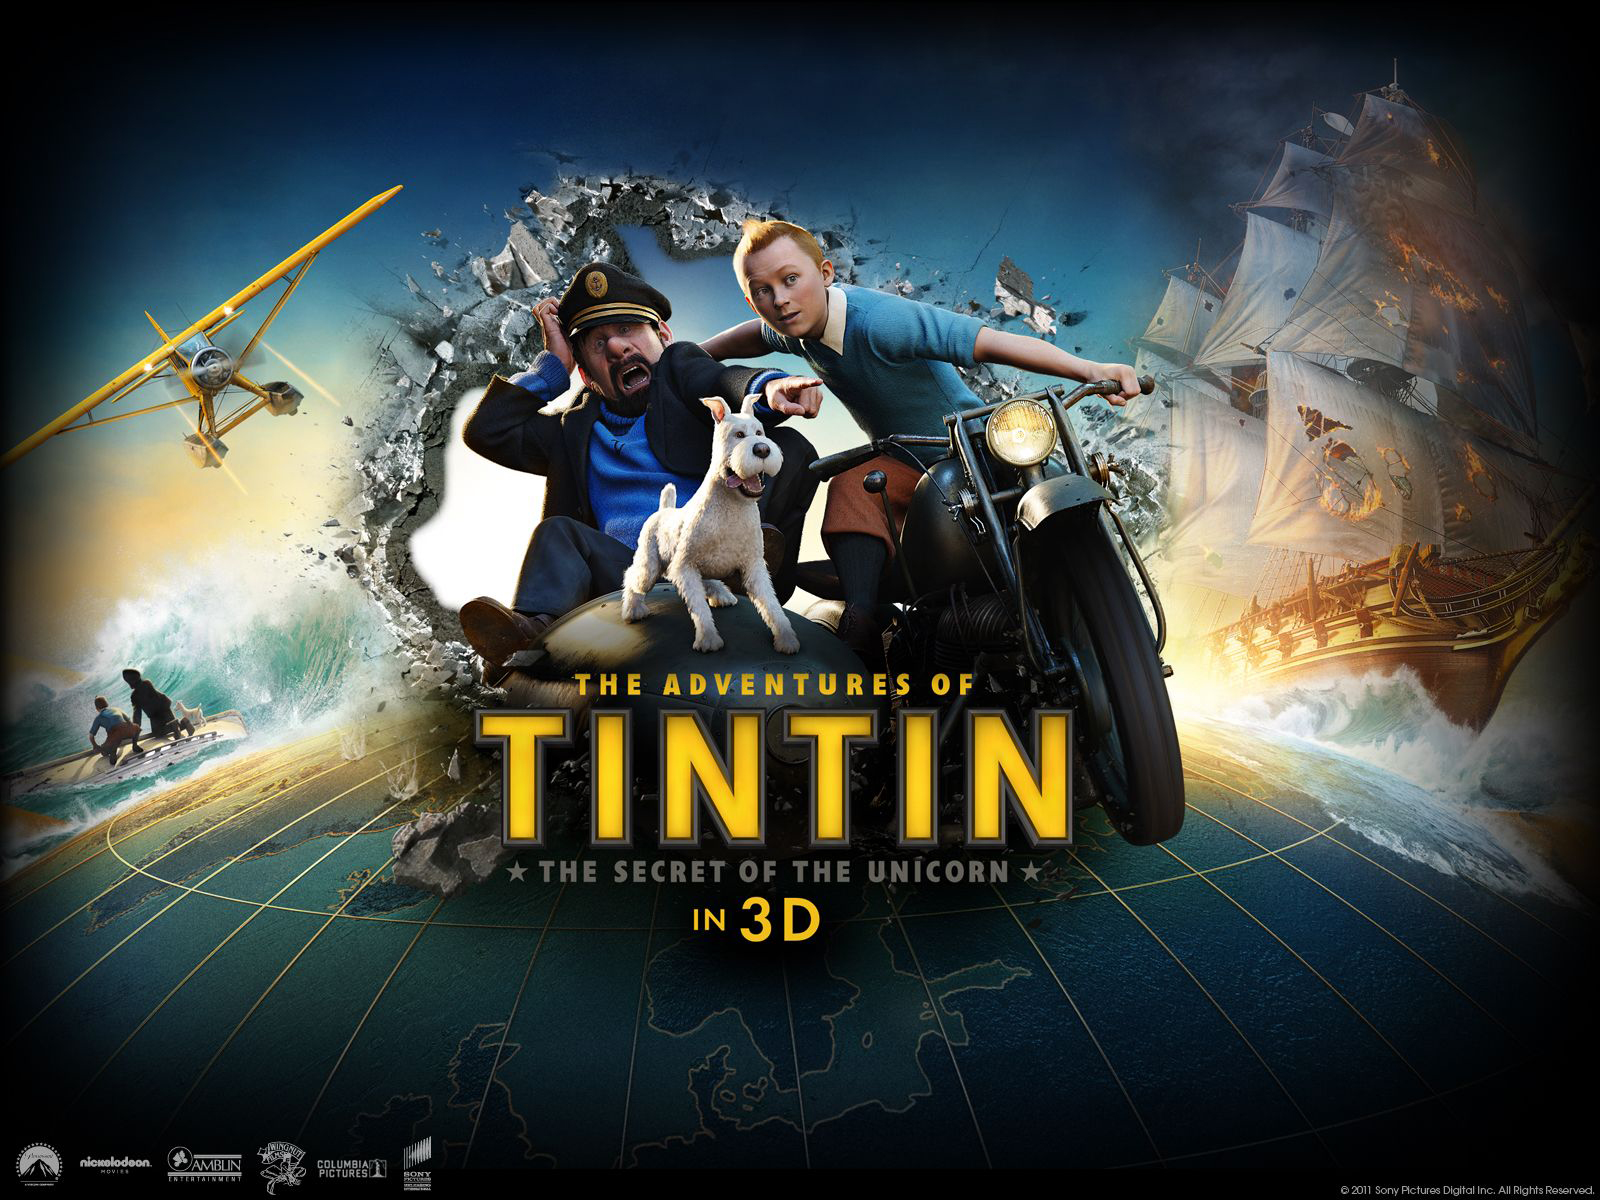 State-of-the-Art The Adventures of Tintin Eyewear by Oakley (1)